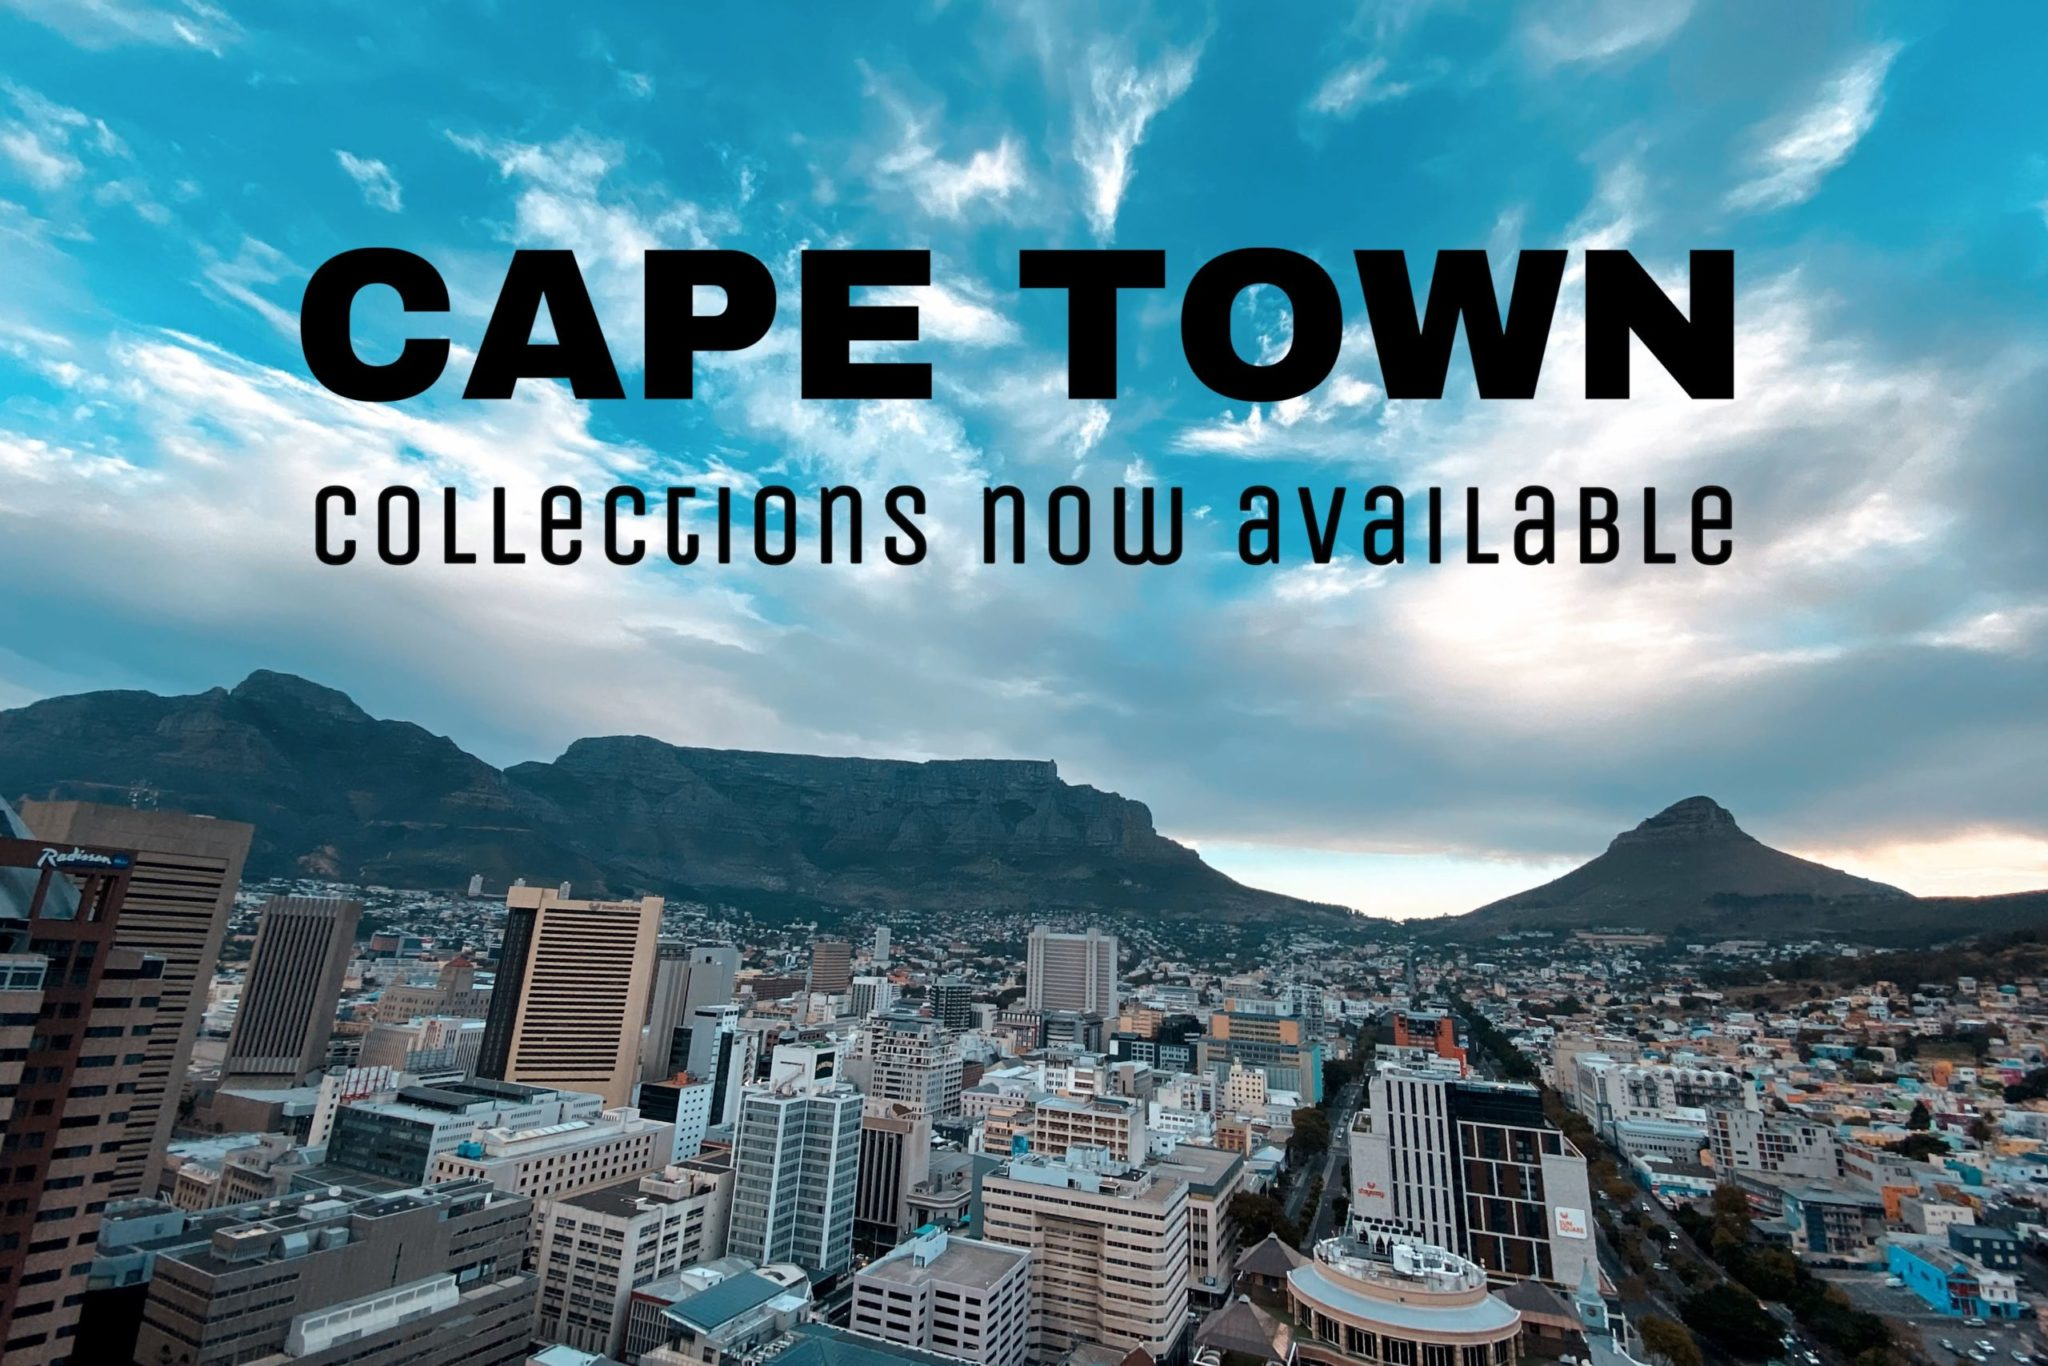 A-Mart Cape Town Collections